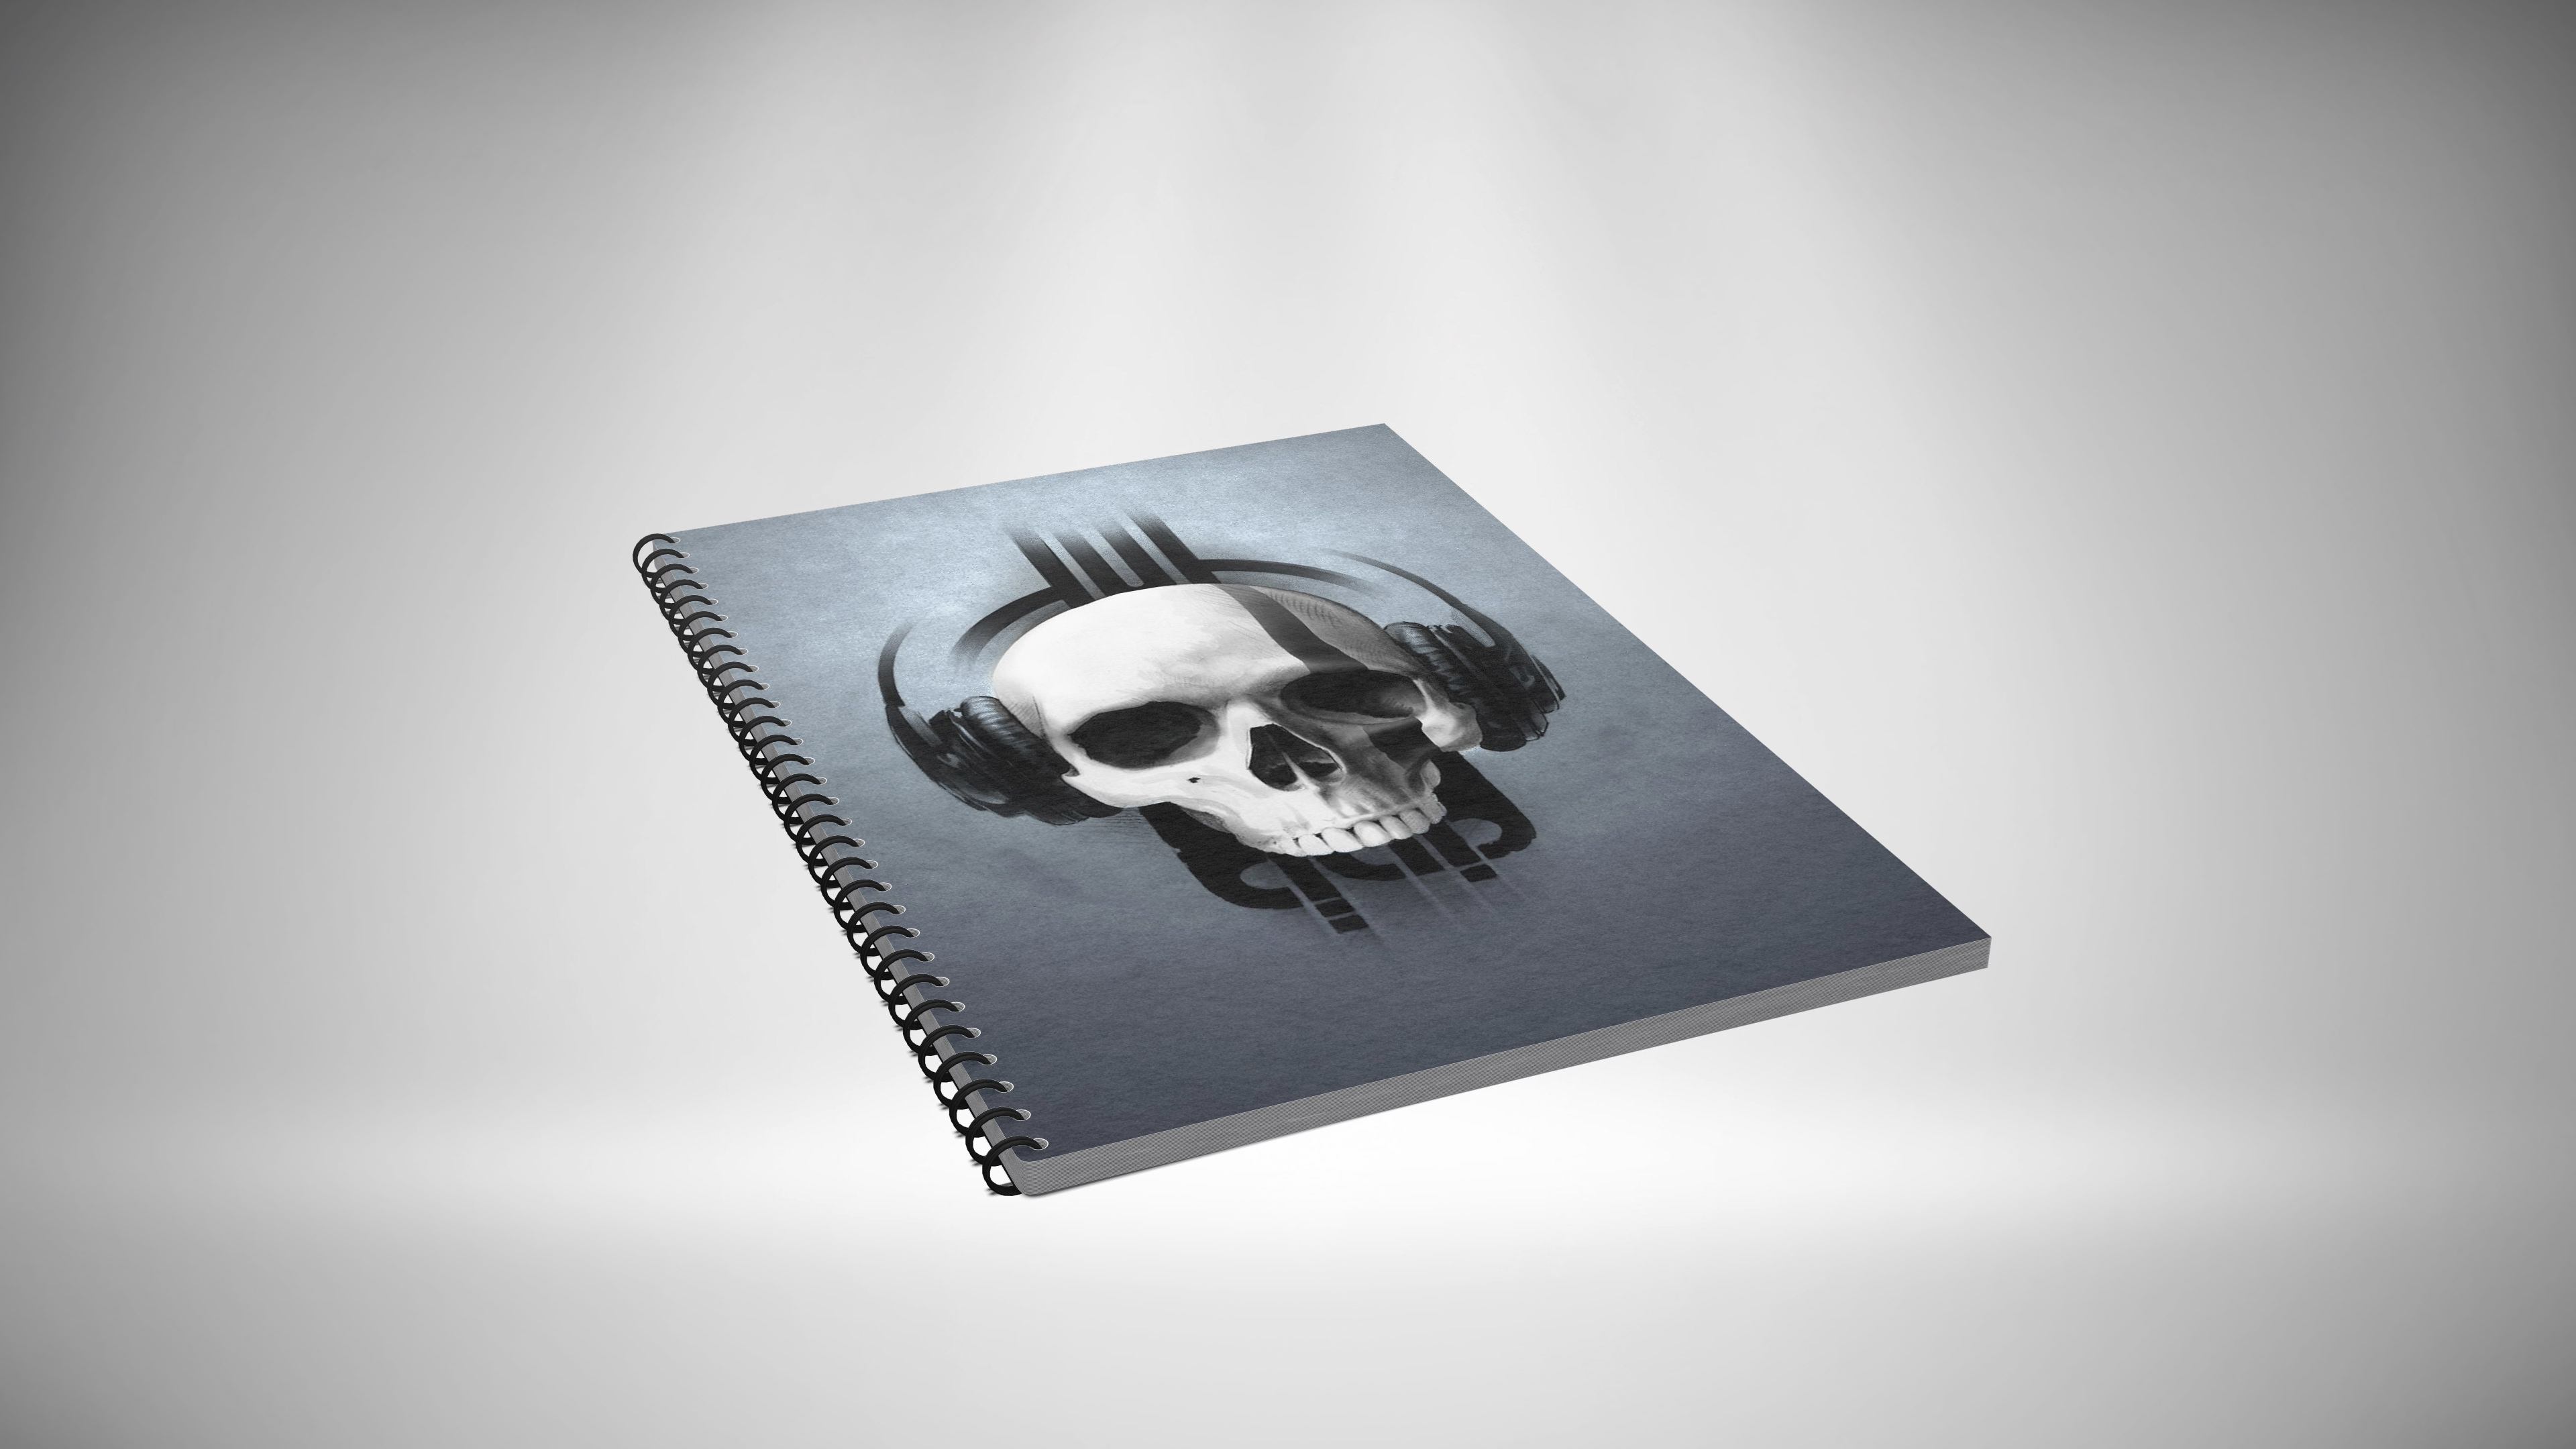 Spiral Notebook Mockup Ideas